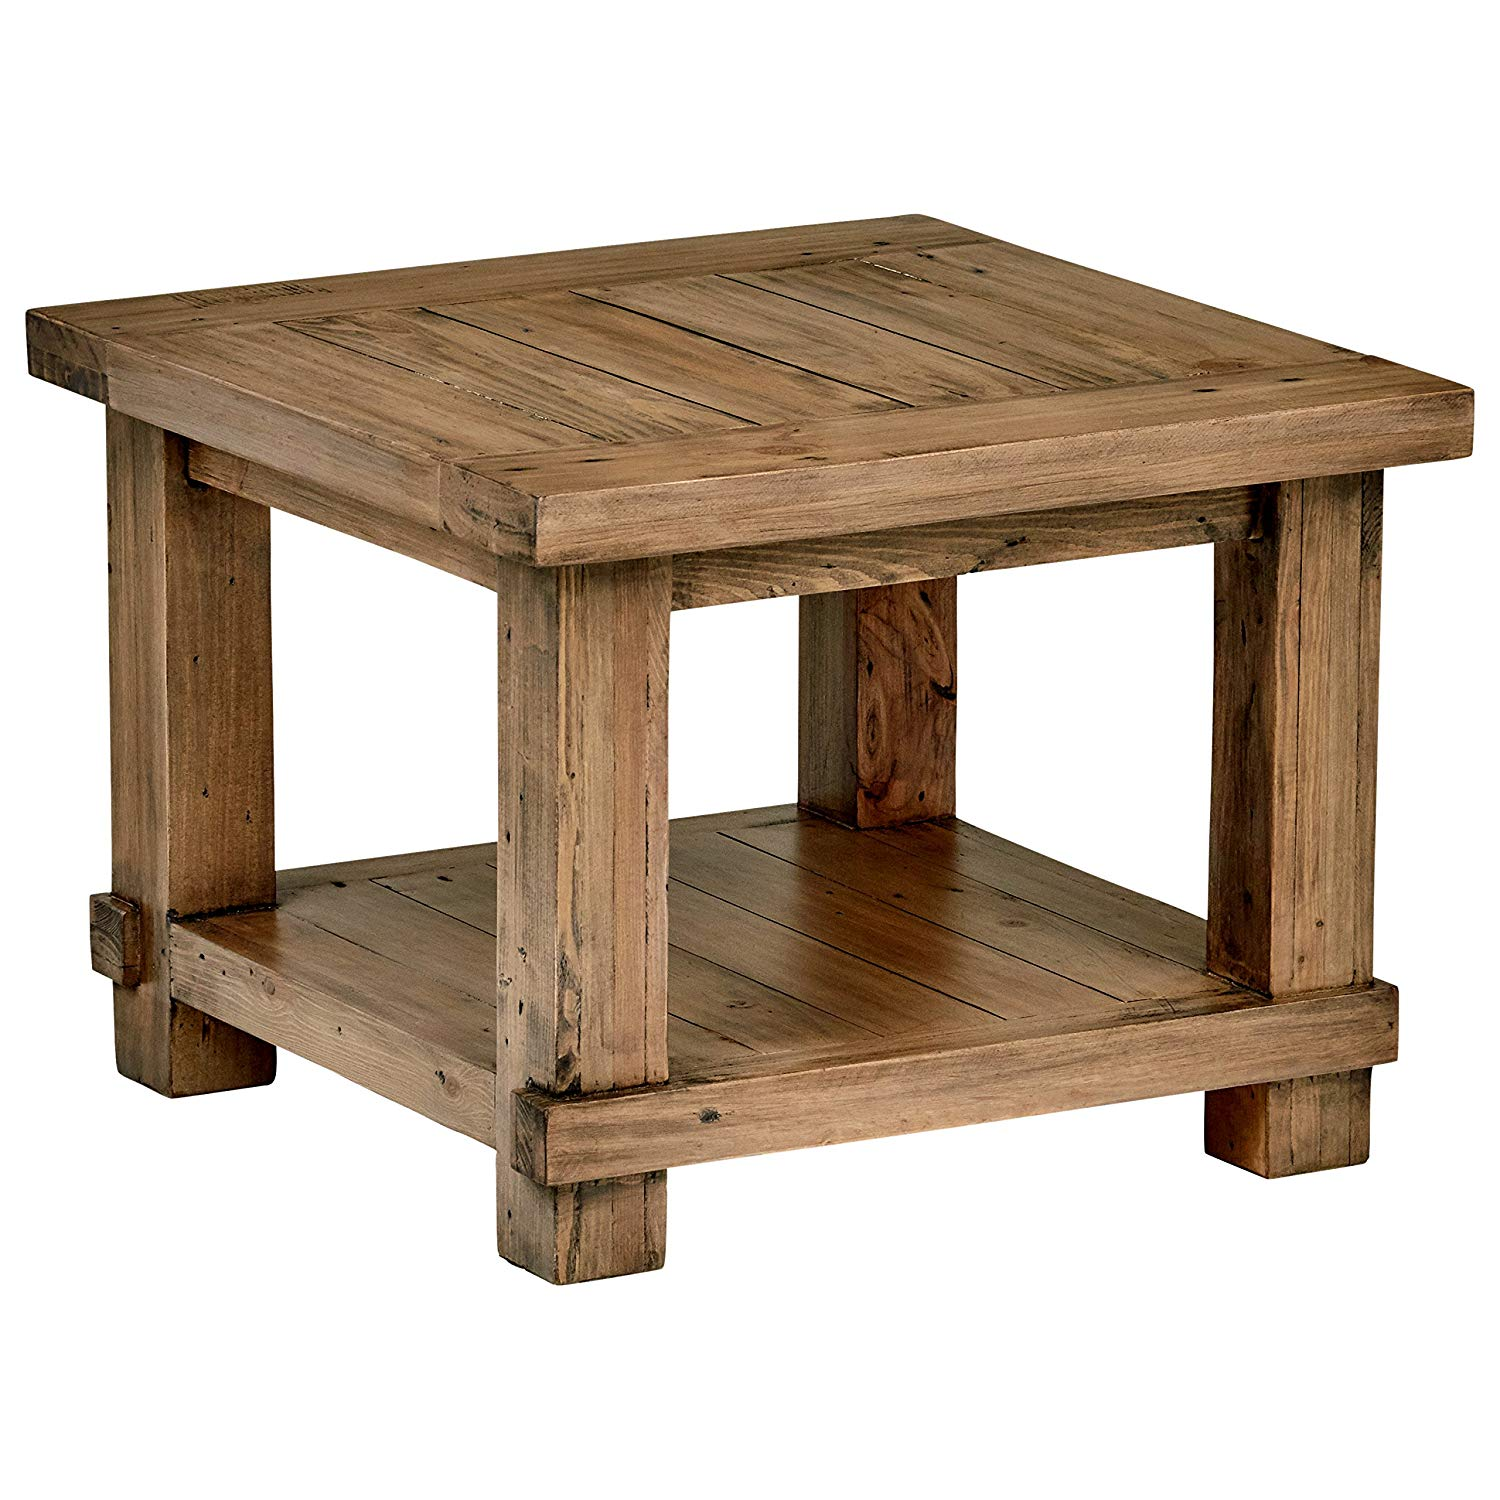 stone beam ferndale rustic side table pine white accent kitchen dining garden furniture rubber carpet edging trim black lamp tables for living room demilune farmhouse breakfast